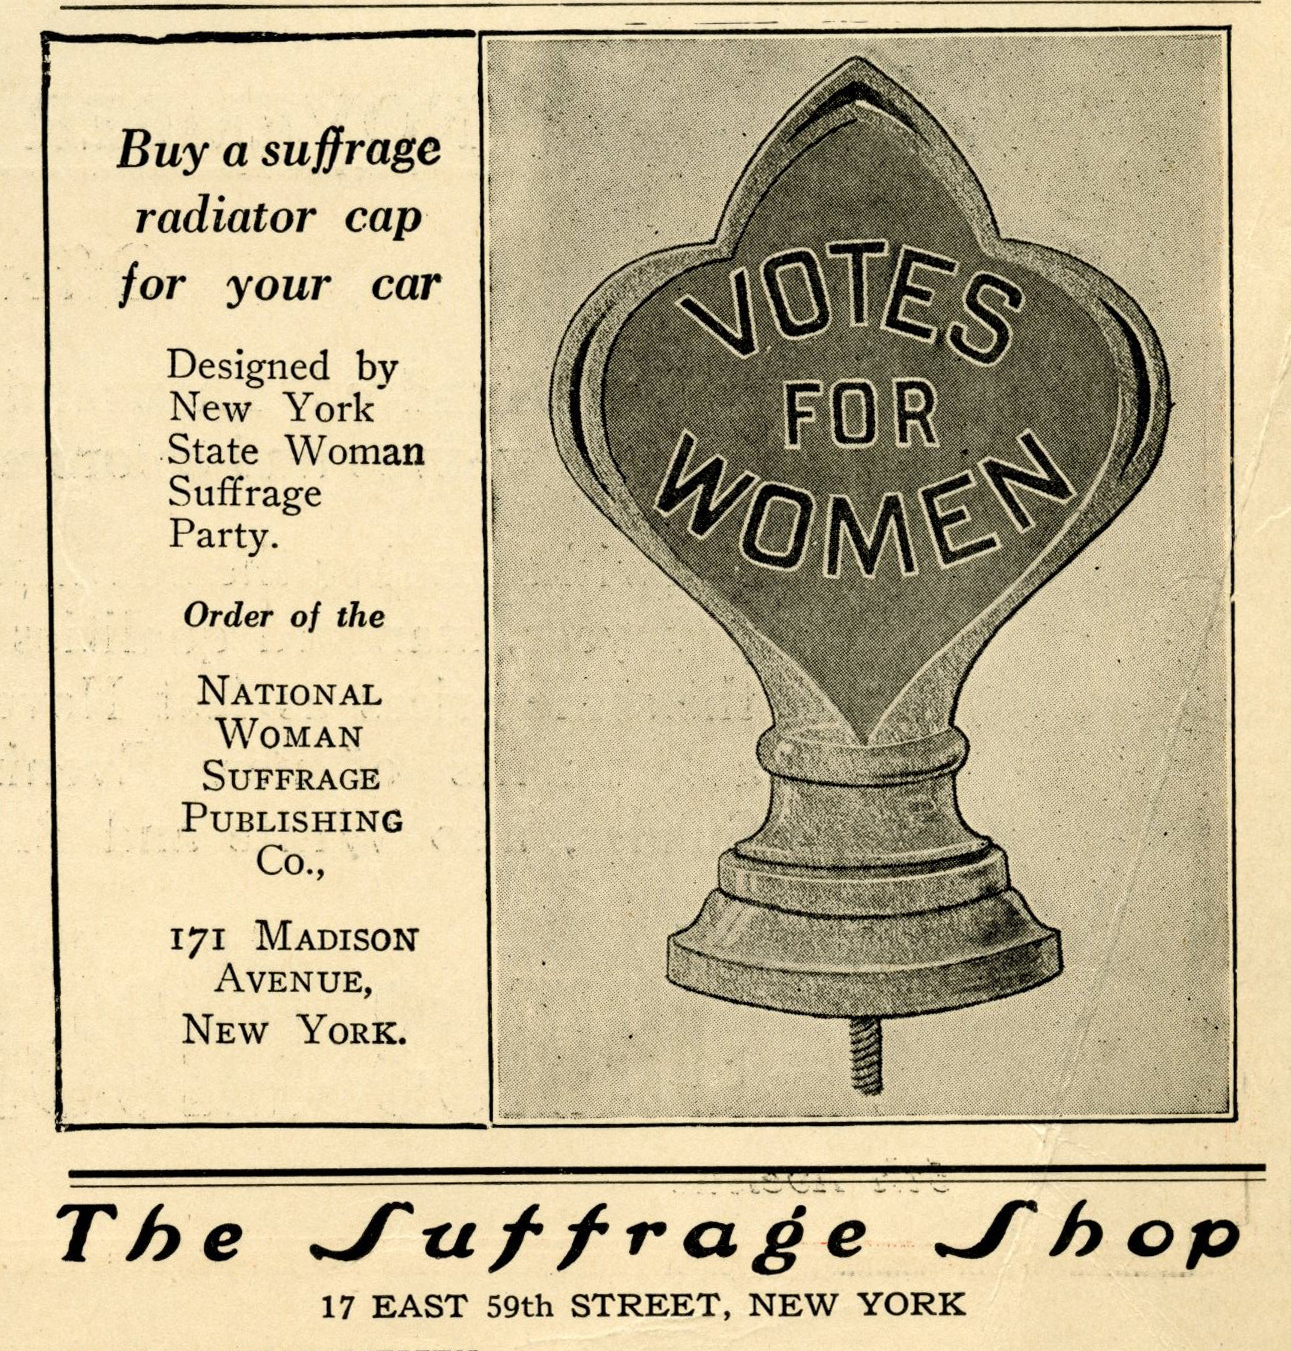 Woman Citizen Oct 27 1917 inside Suffrage radiator cap.jpg